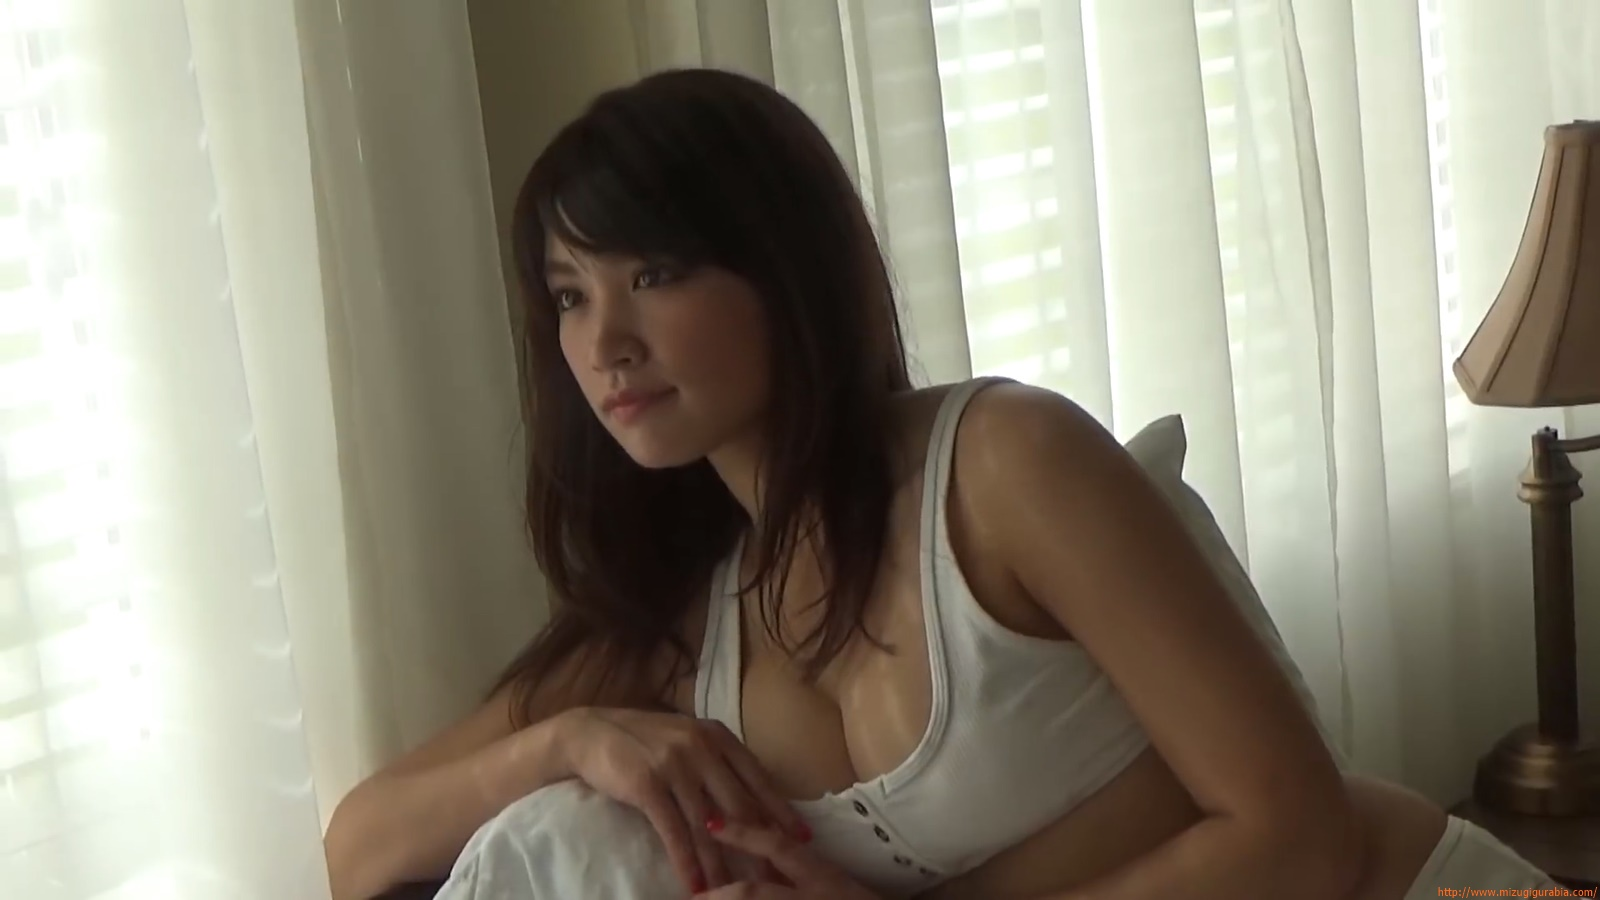 Shes a sunny bodice who continues to lead the way in gravure006